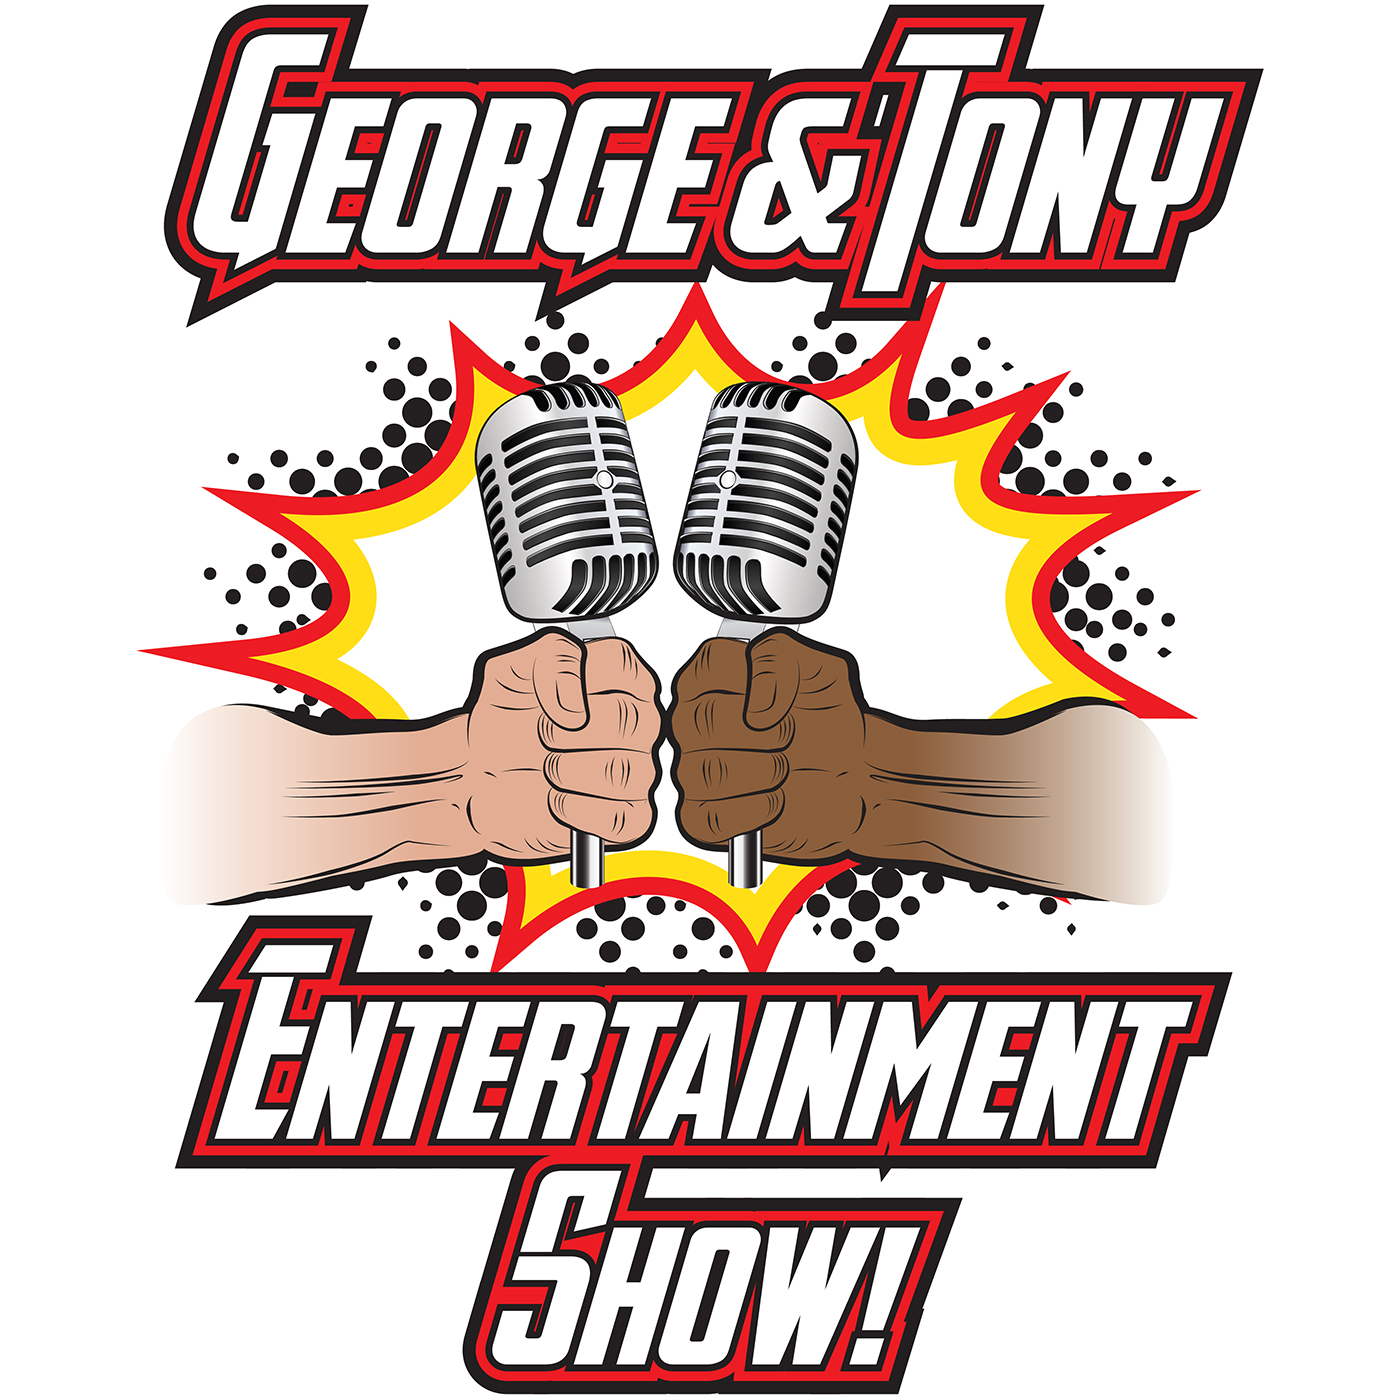 George and Tony Entertainment Show #10